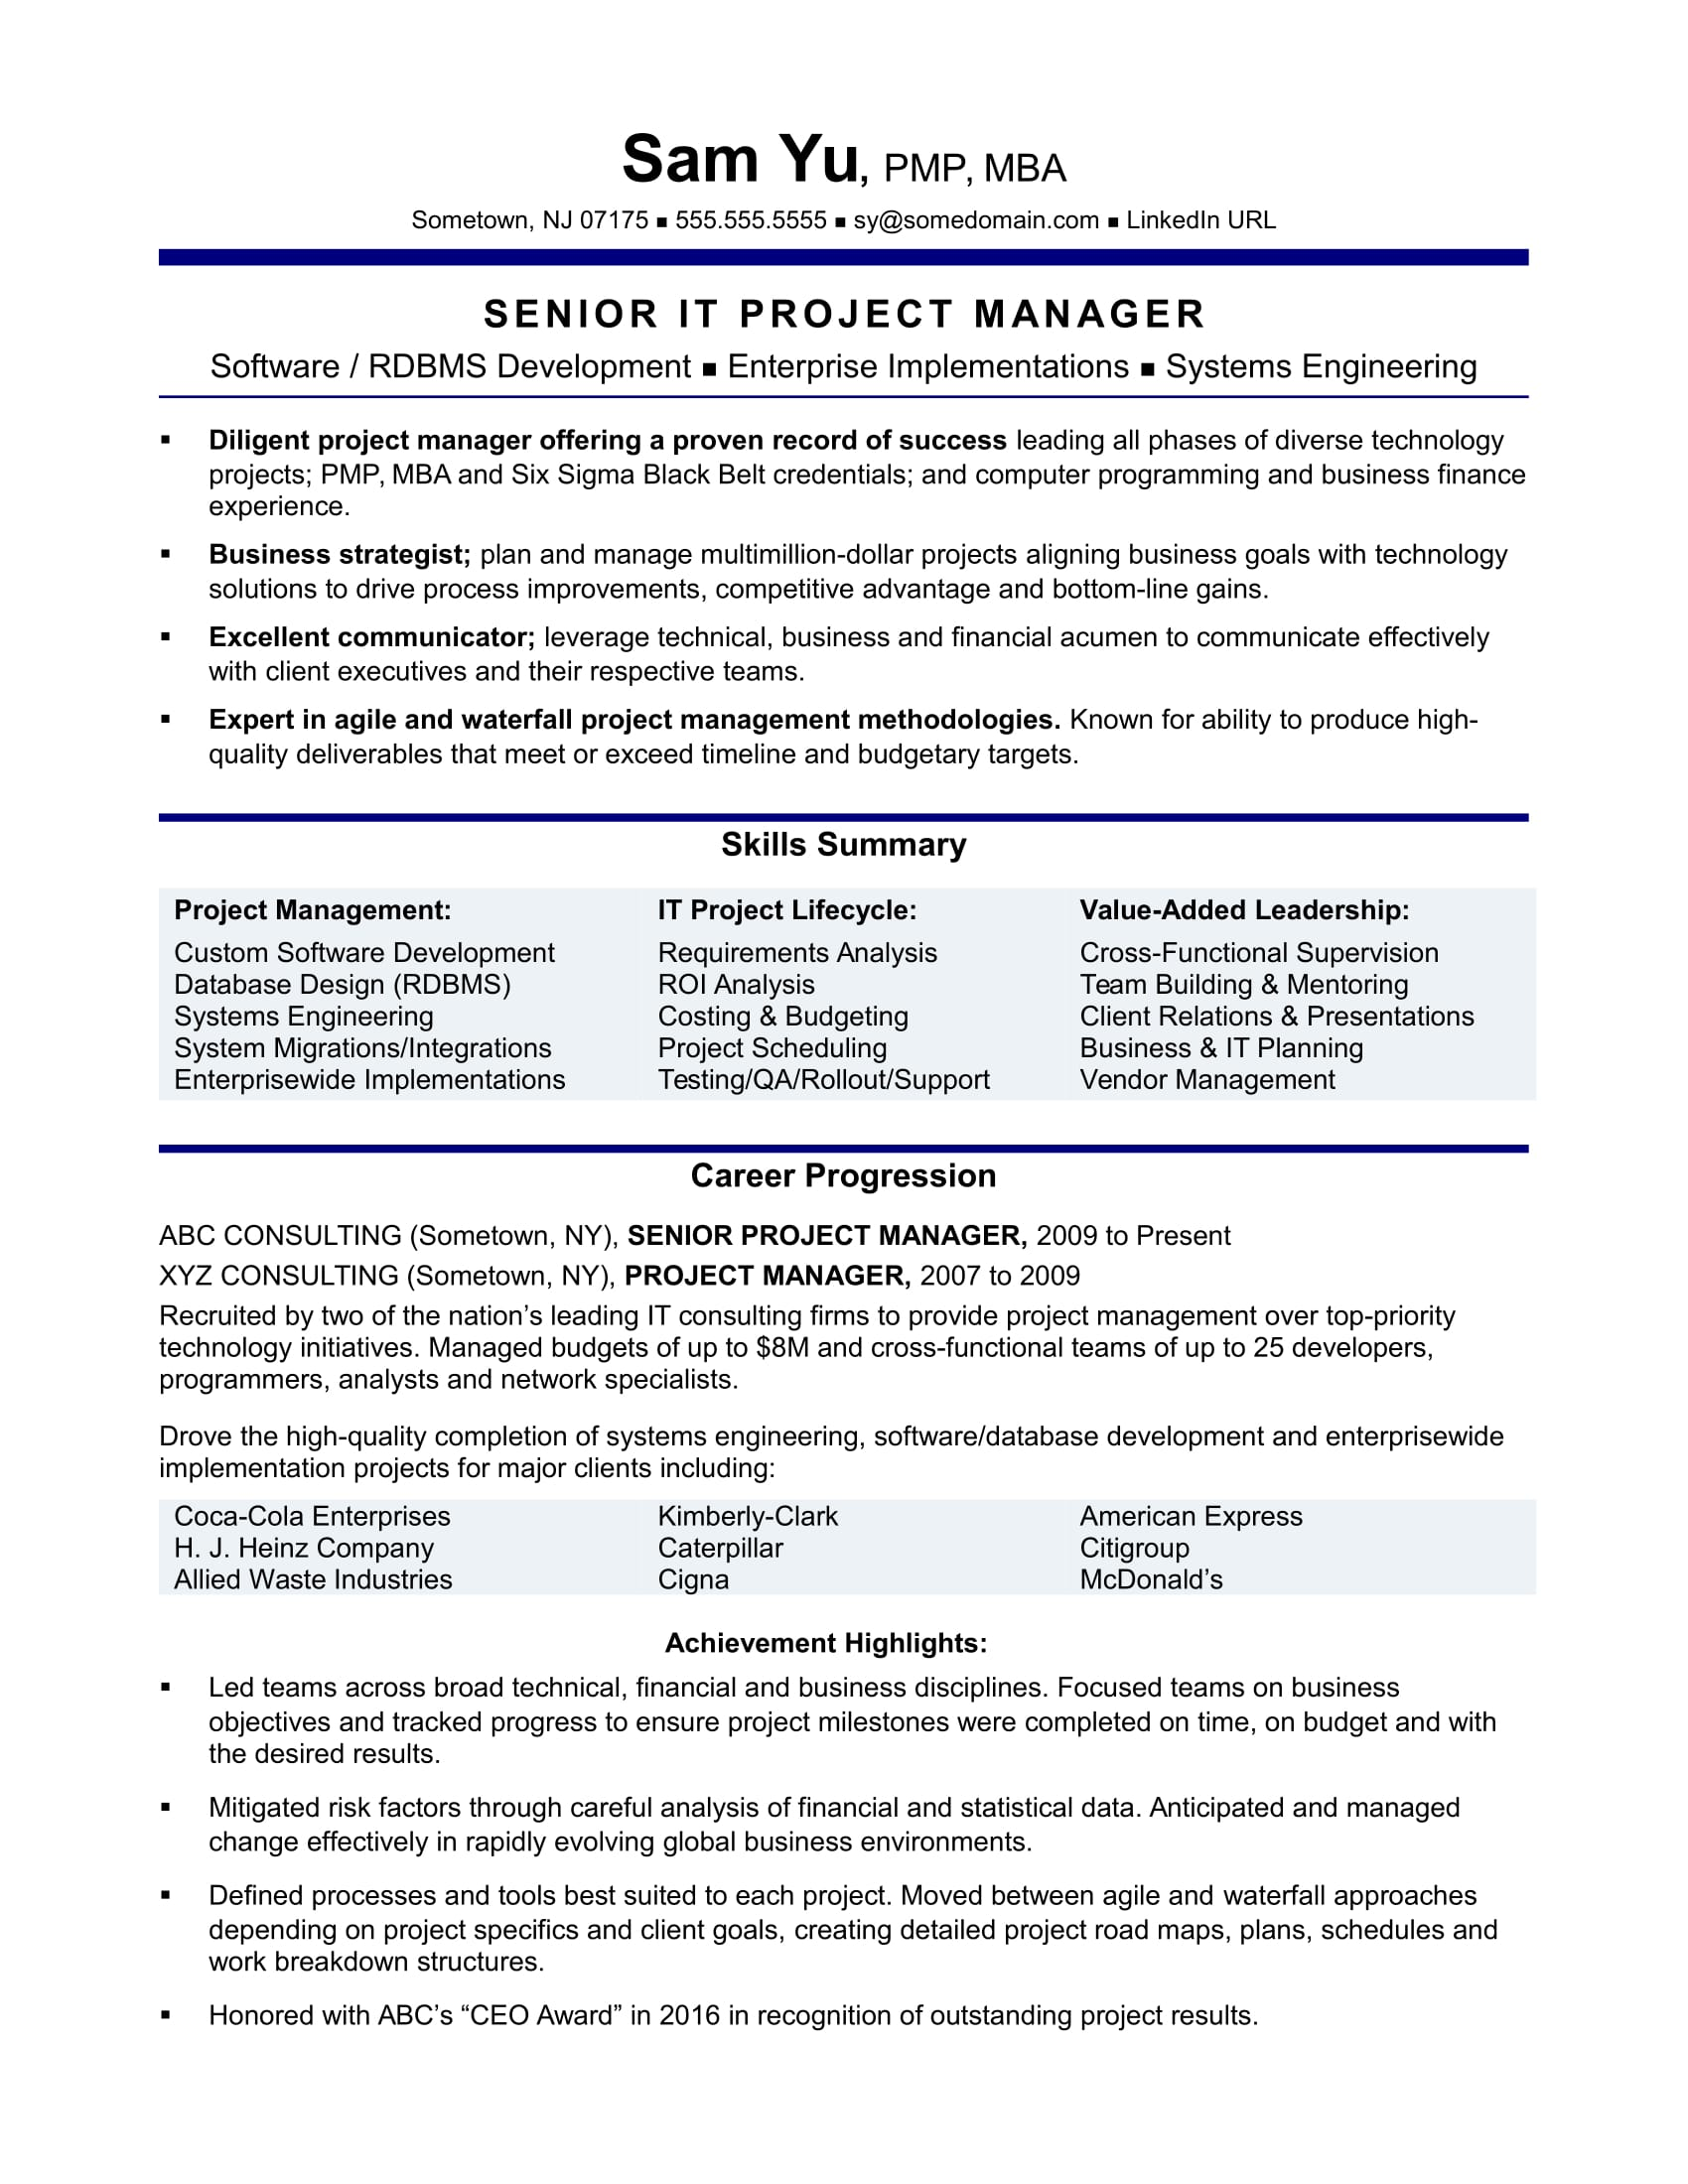 Experienced IT Project Manager Resume Sample  American Resume Samples